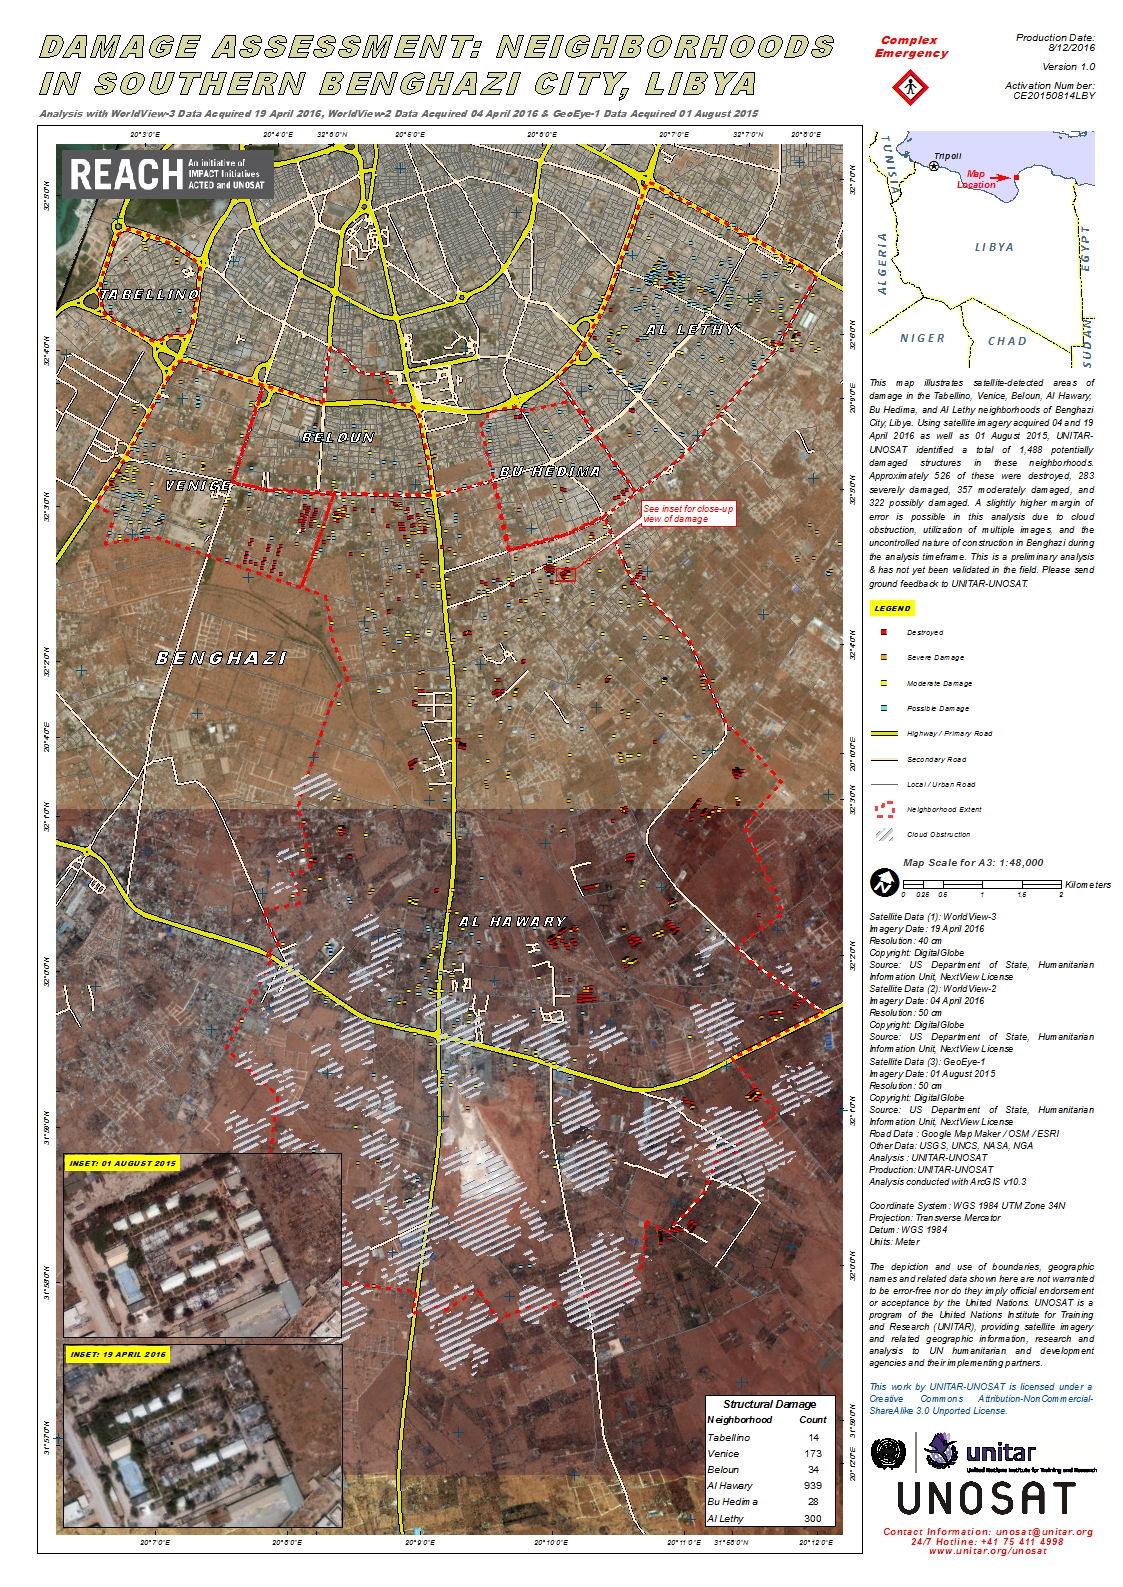 Damage Assessment Neighborhoods in Southern Benghazi City Libya